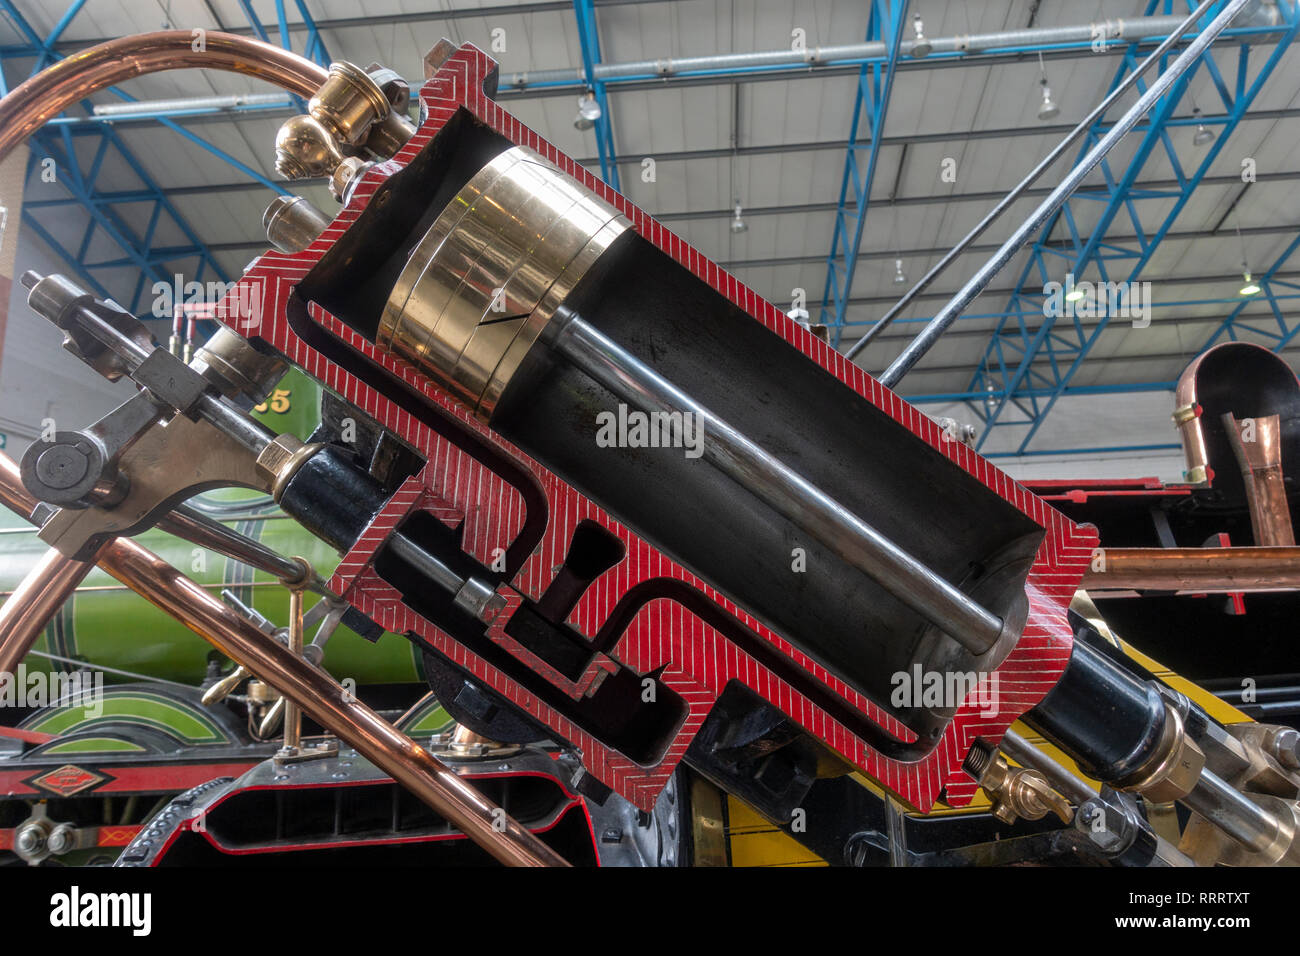 Cutaway of a piston on the replica of Stephenson's Rocket, as it appeared in 1829, on display in the National Railway Museum, York, UK. - Stock Image